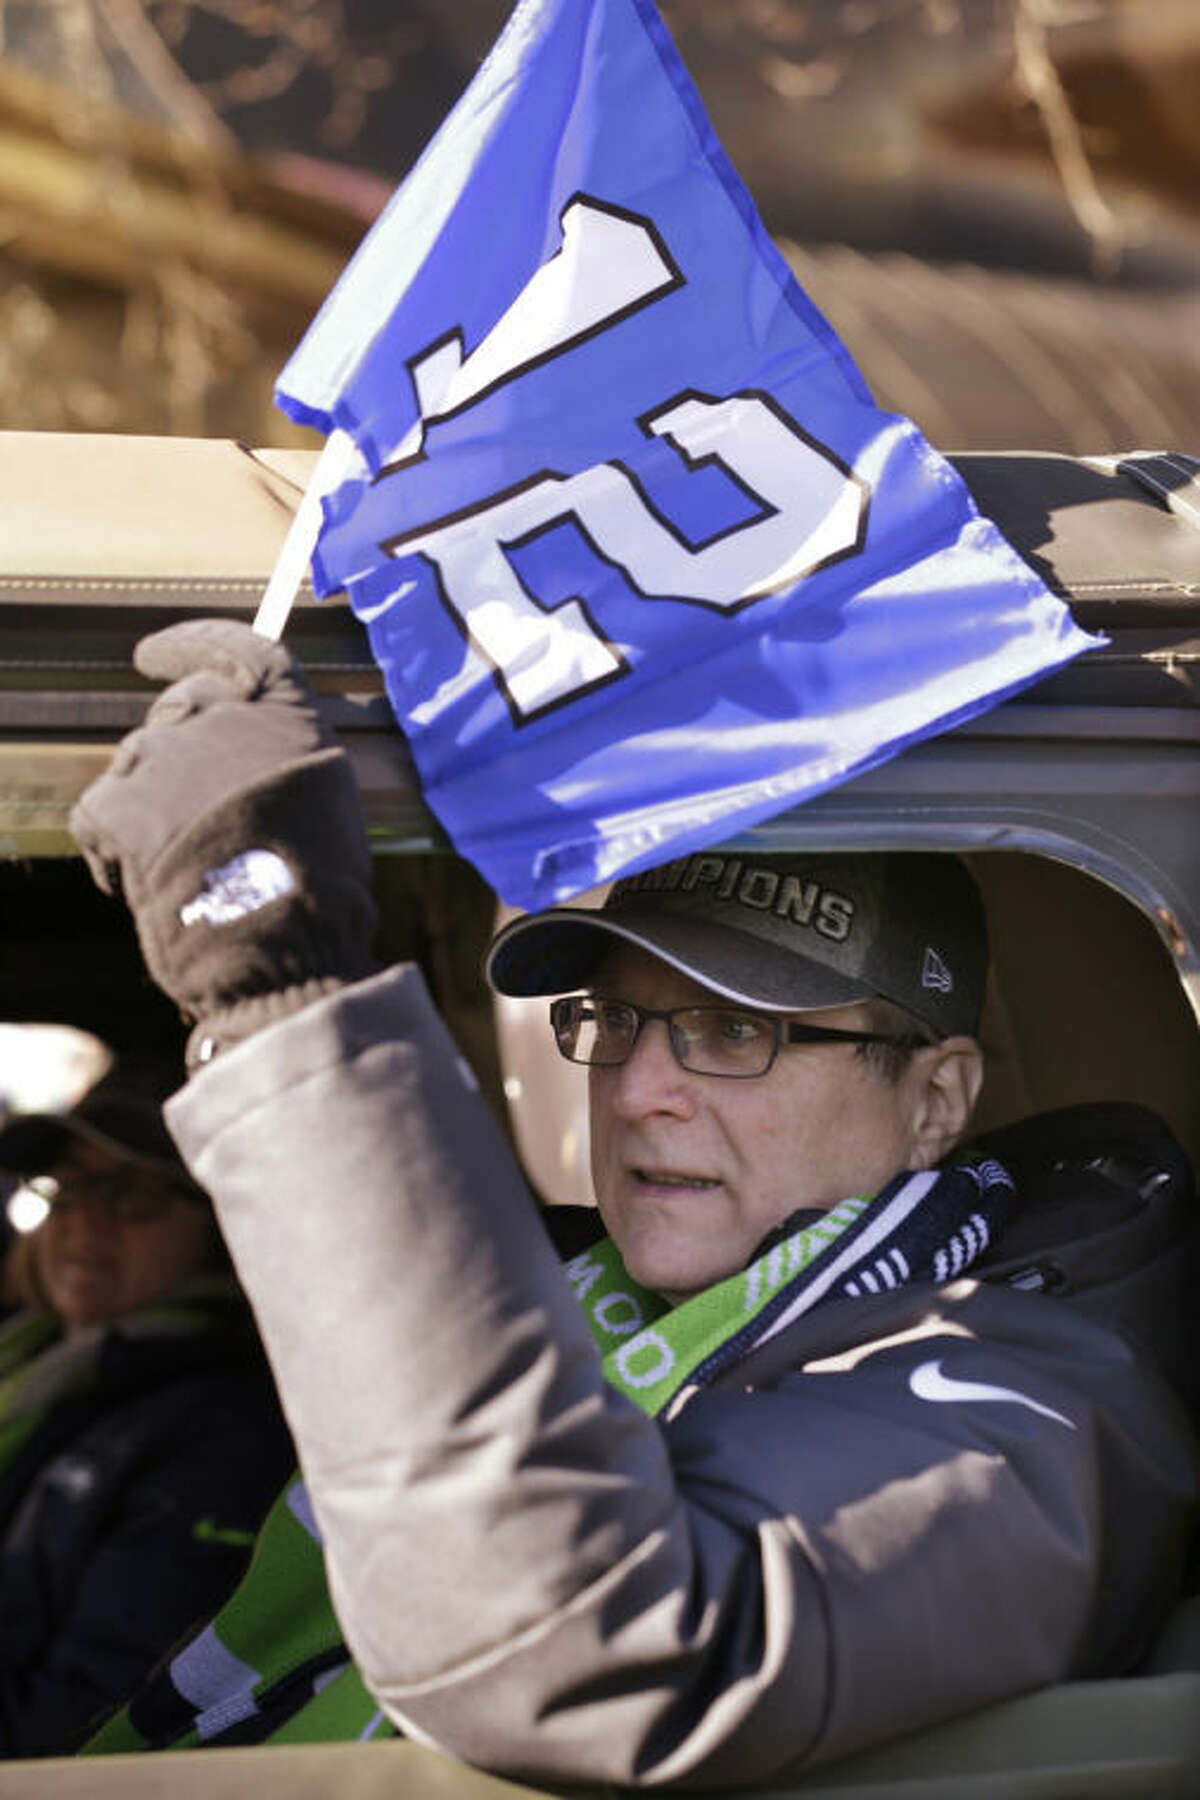 Seattle Seahawks owner Paul Allen waves a 12th Man flag out of his window as he rides in a parade for the NFL football Super Bowl champions Wednesday, Feb. 5, 2014, in Seattle. The Seahawks defeated the Denver Broncos 43-8 on Sunday. (AP Photo/Elaine Thompson)